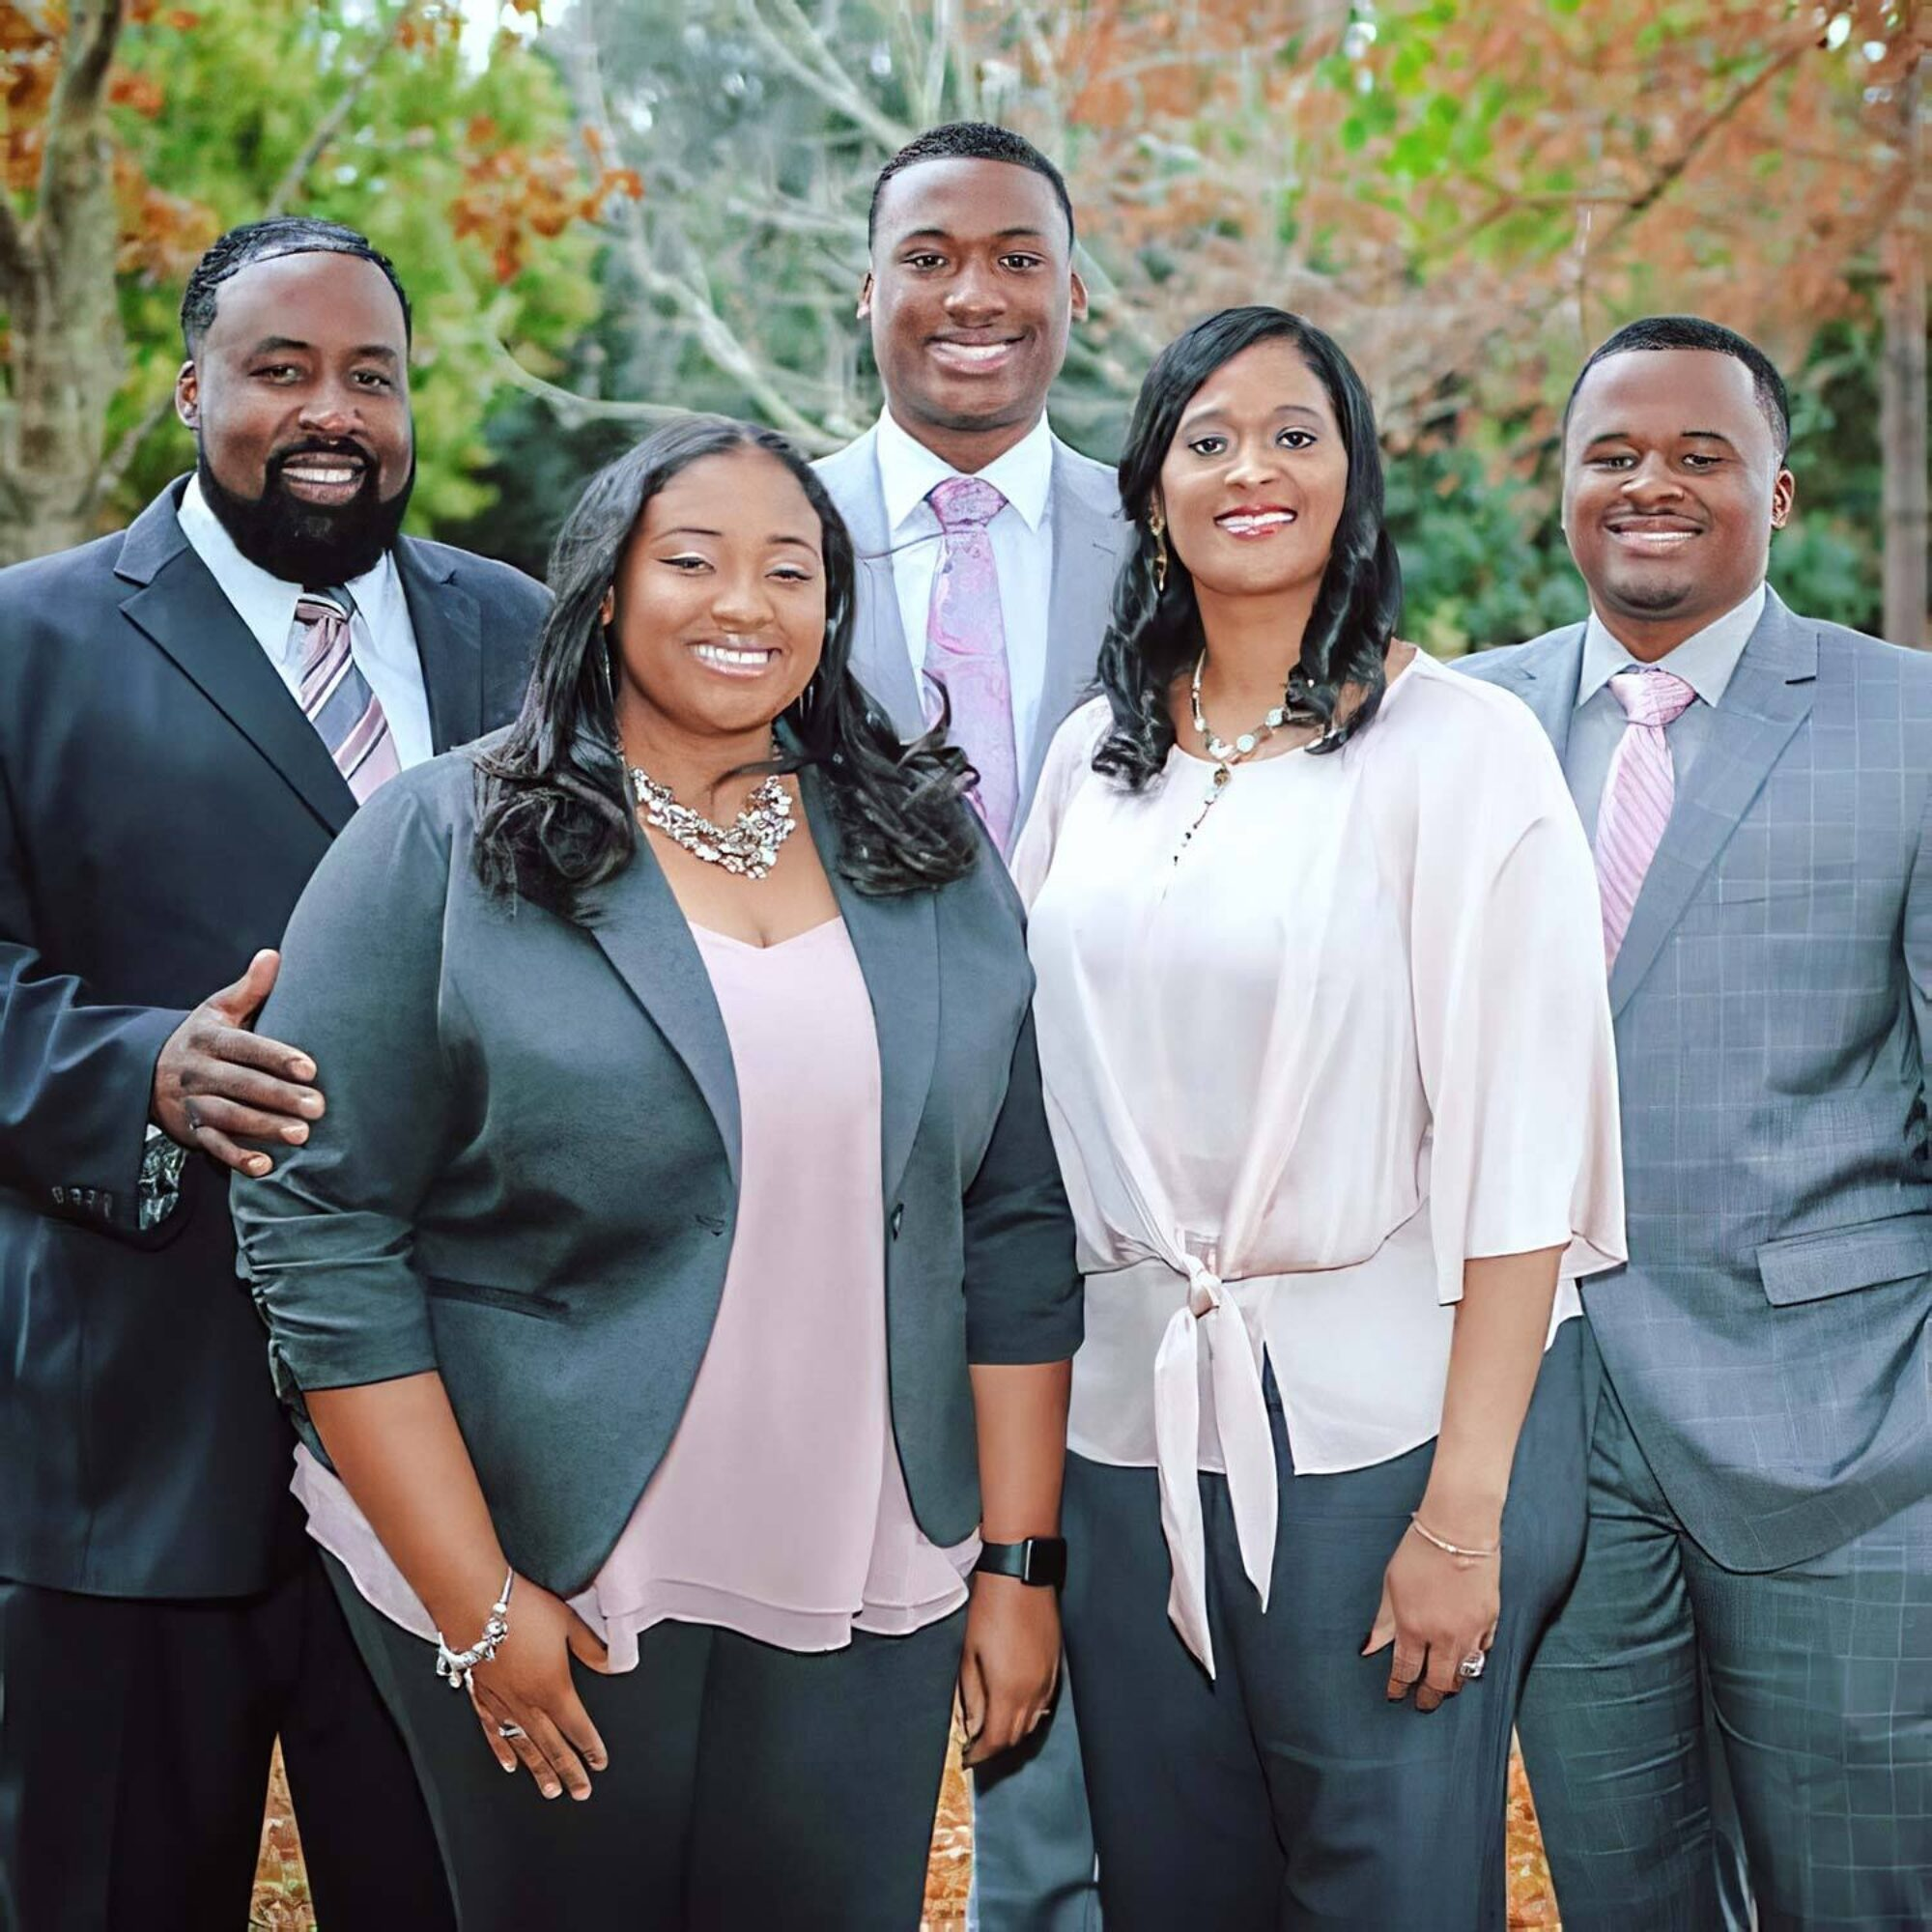 Clockwise from left, Kendall Pierre Sr., sons Kaden and Kendall Jr., wife Sabrina and daughter Tayler.